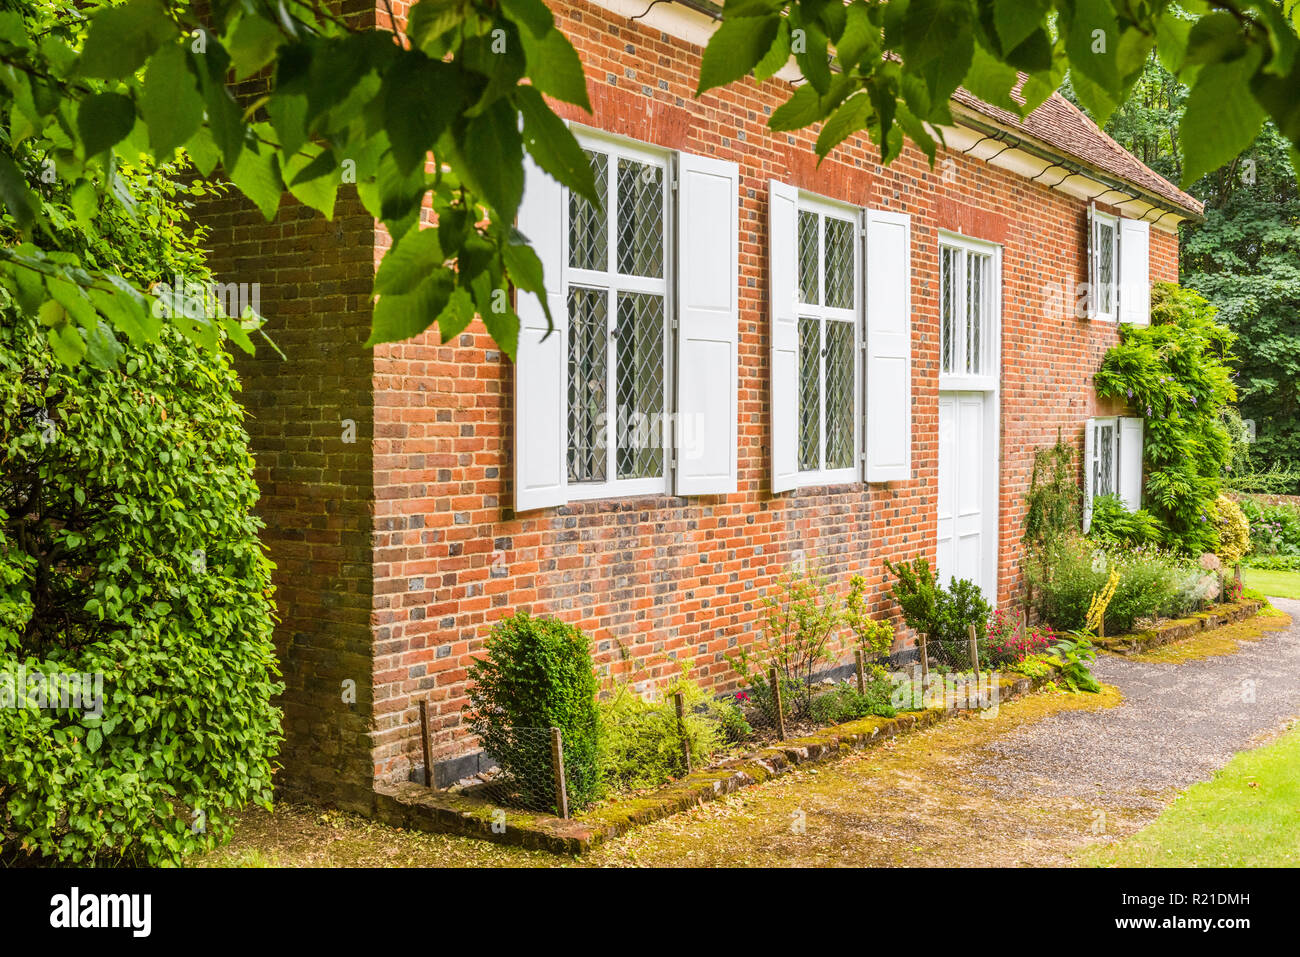 Jordans Friends Meeting House, Buckinghamshire, England. Pennsylvania founder William Penn is buried here. - Stock Image